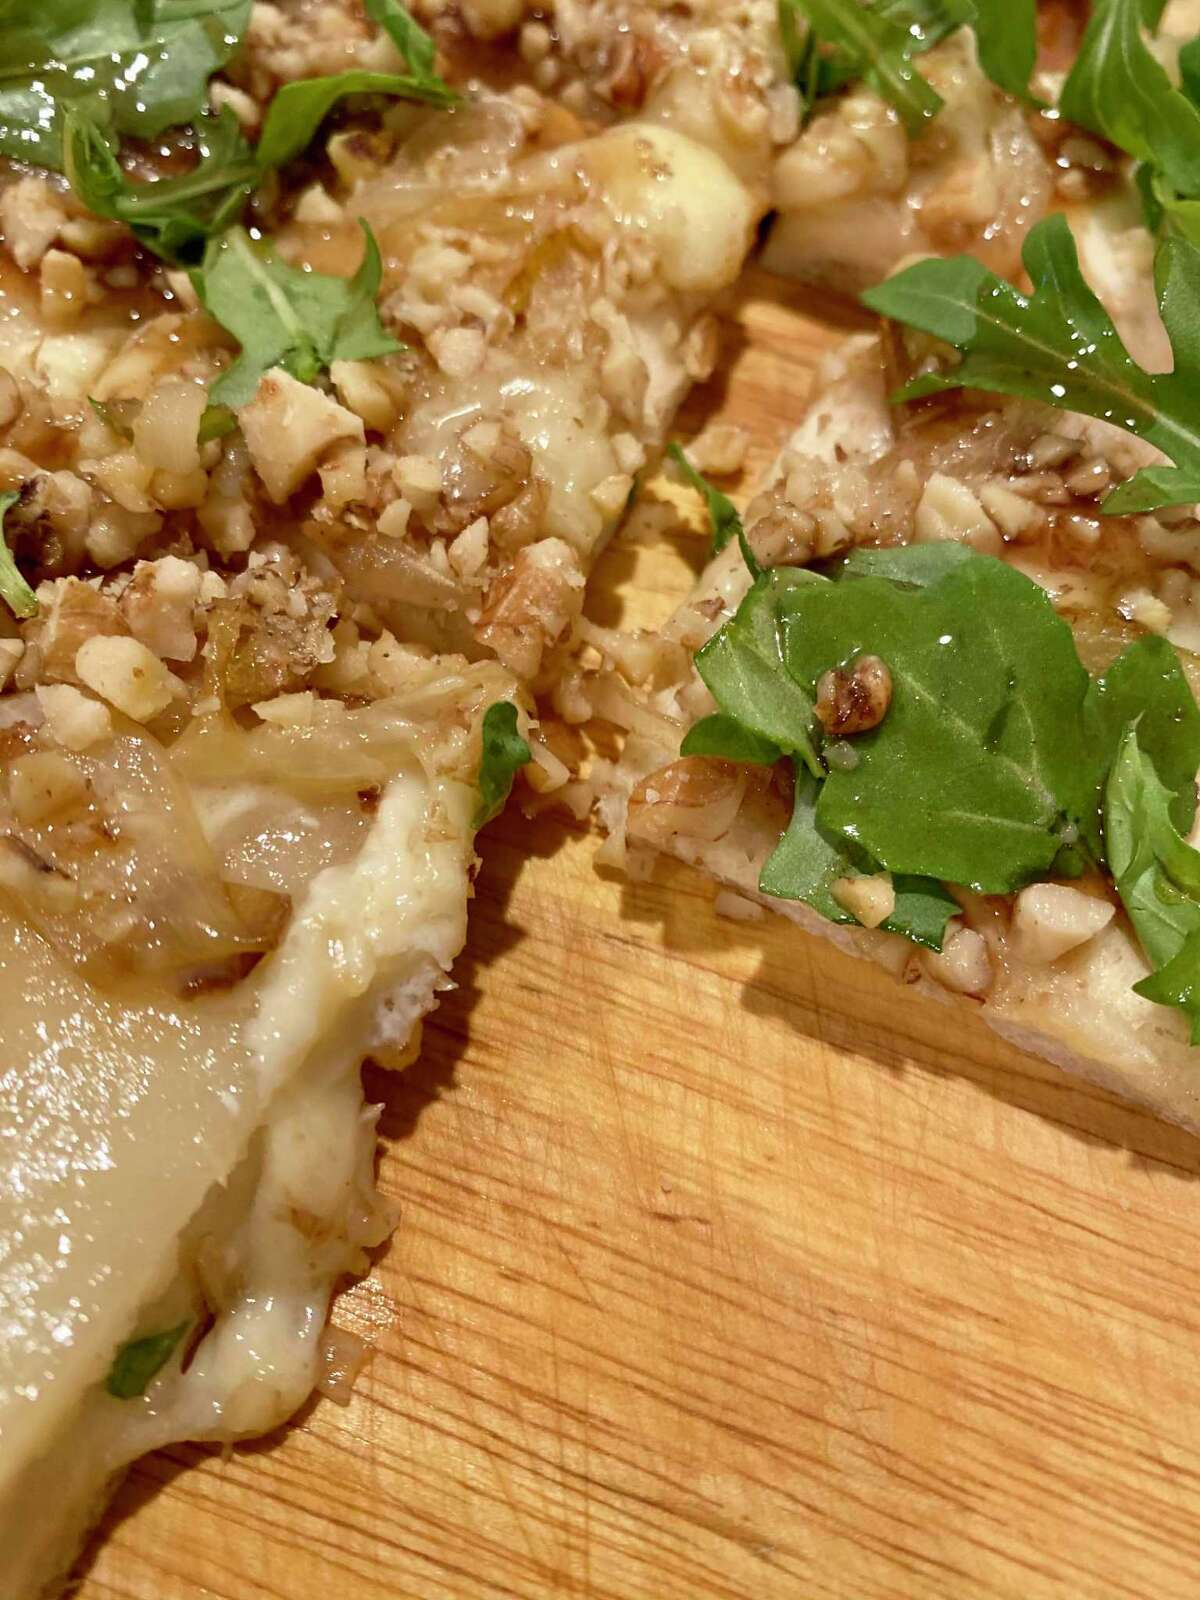 Looking to try something a little different? A pear flatbread makes for a light and refreshing dish.